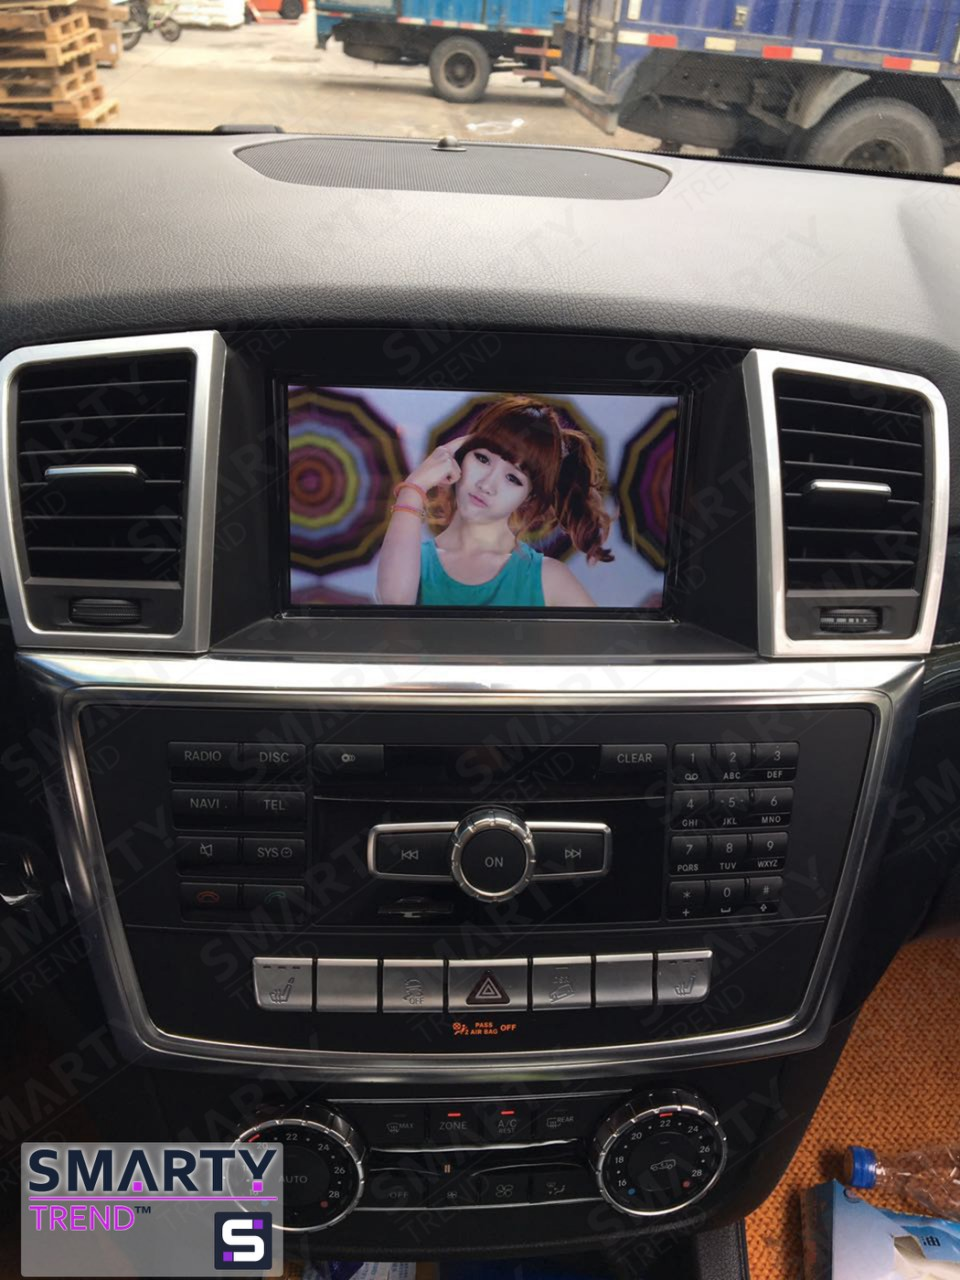 SMARTY Trend head unit for Mercedes Benz GL-Class.